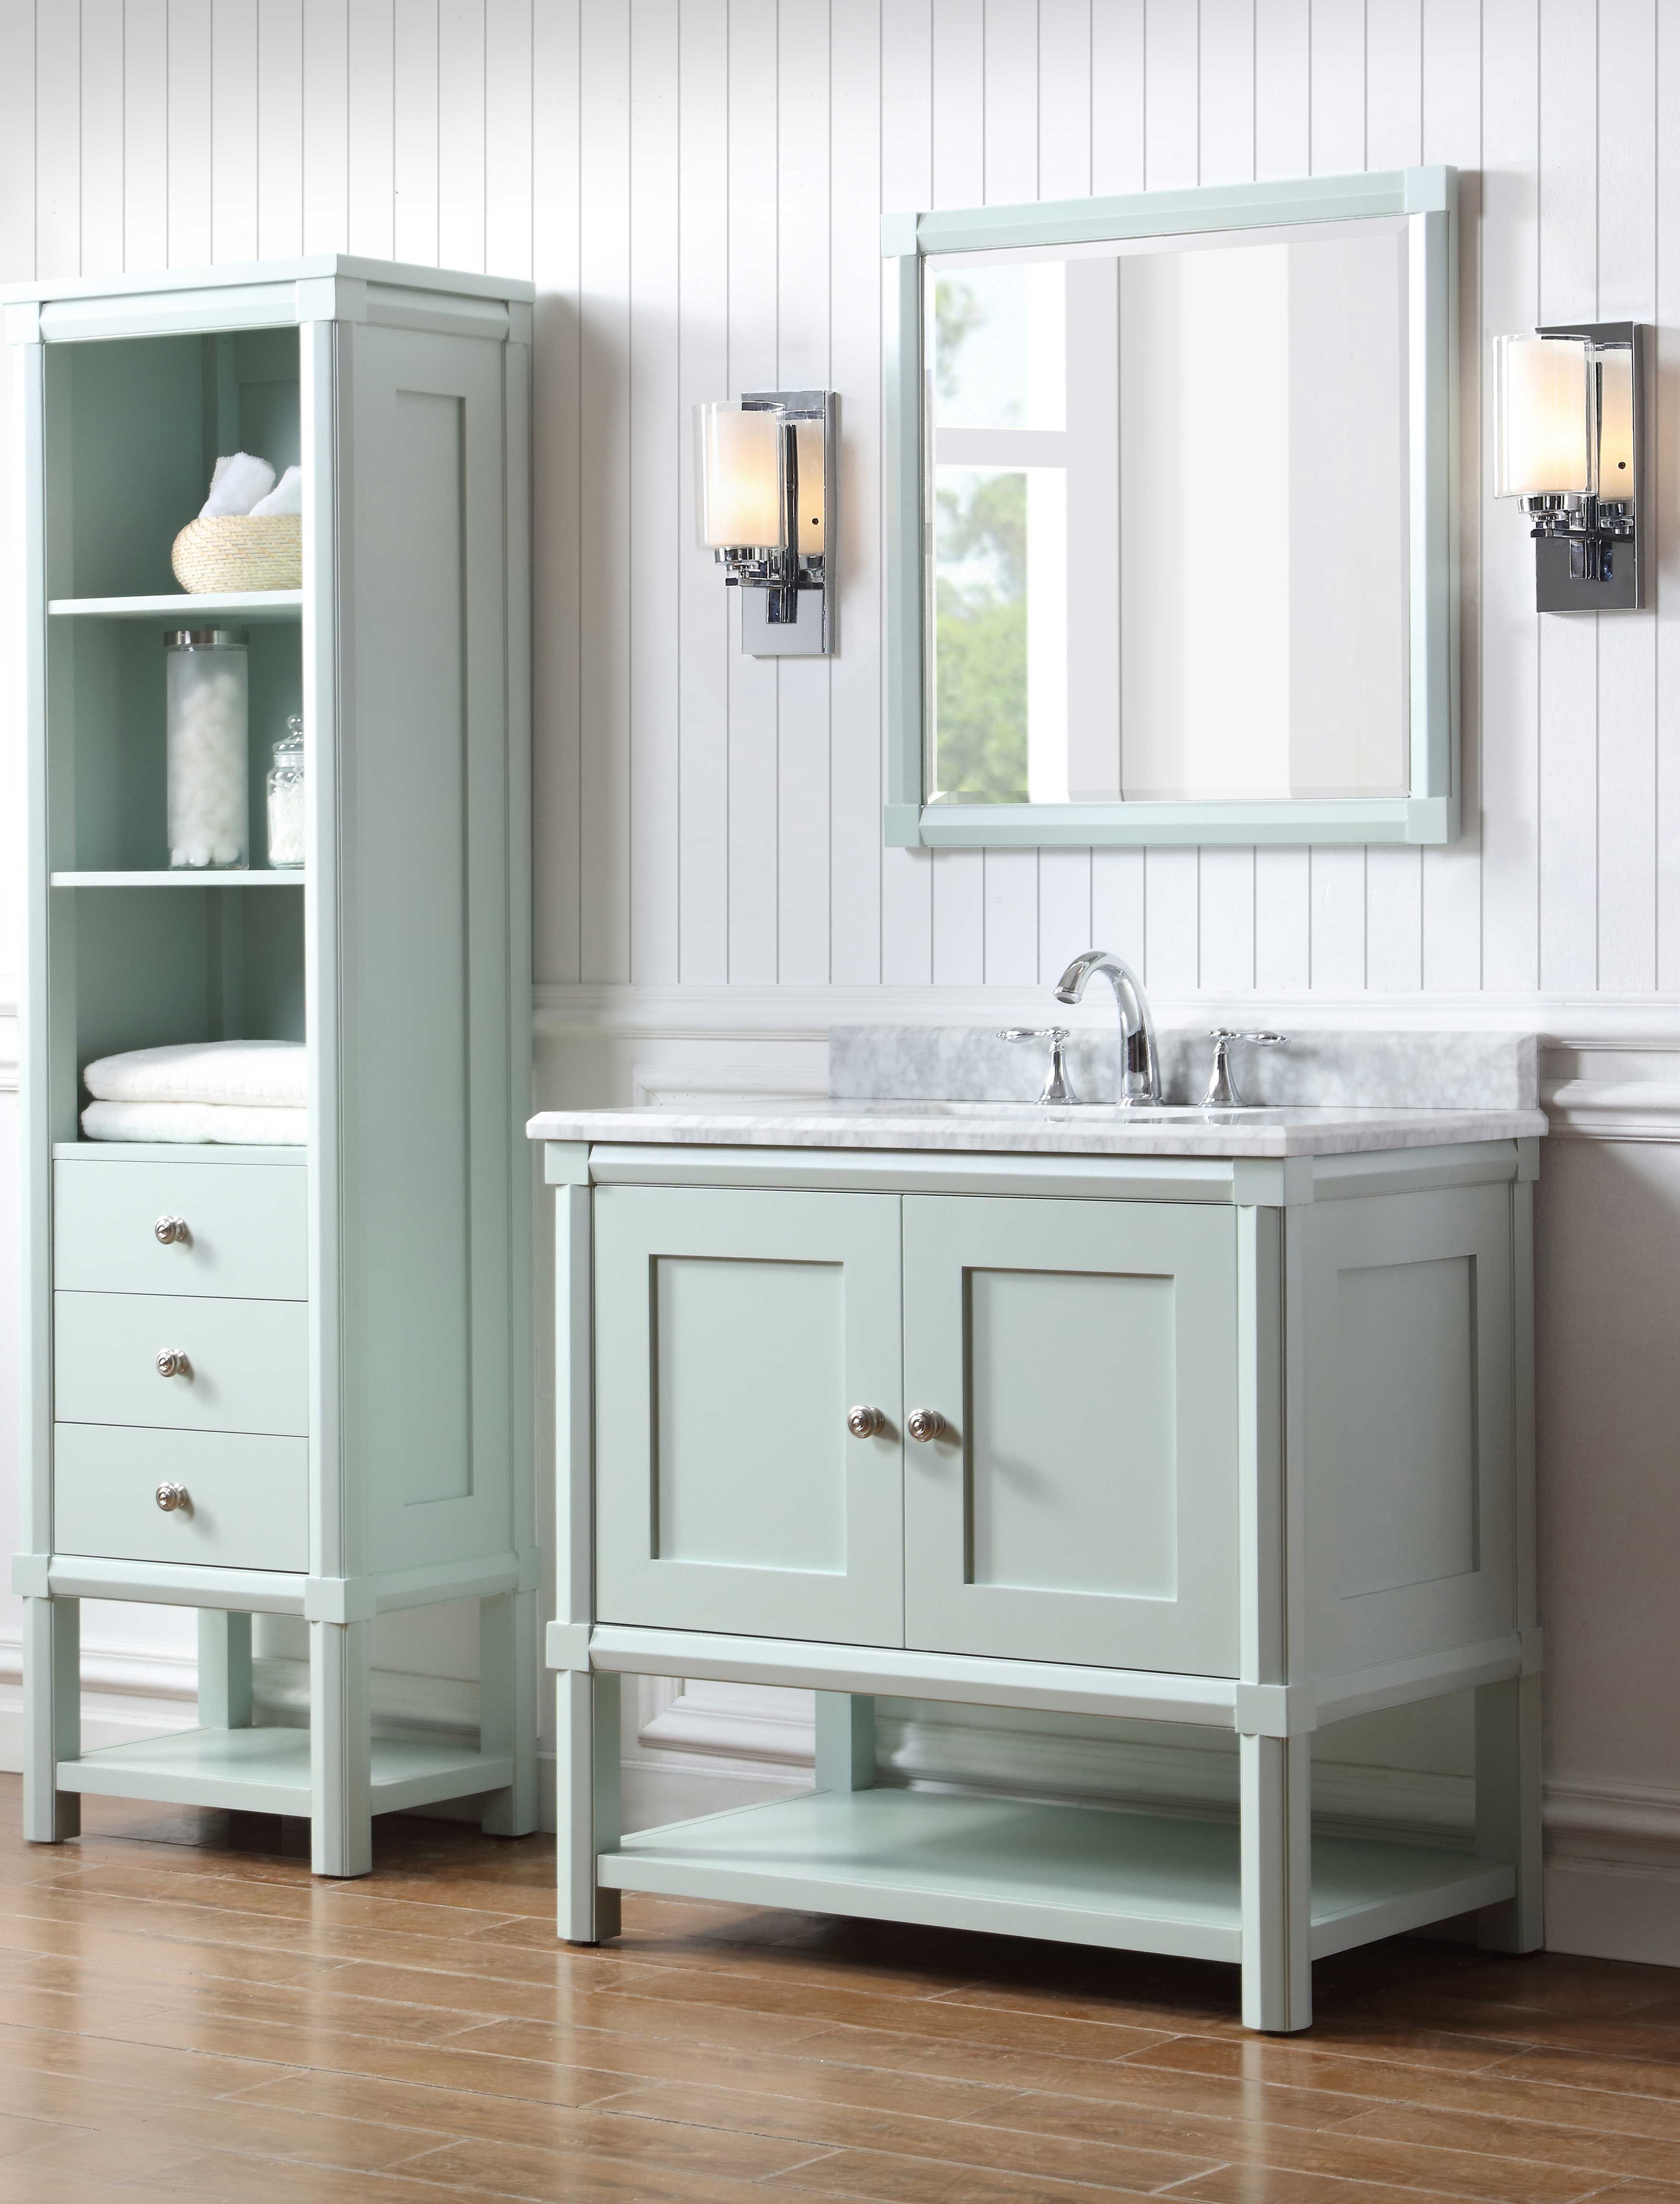 Add A Subtle Pop Of Color To Your Bathroom With Beautifully Designed Vanity And Accessories The Martha Living Bath Collection Is Available